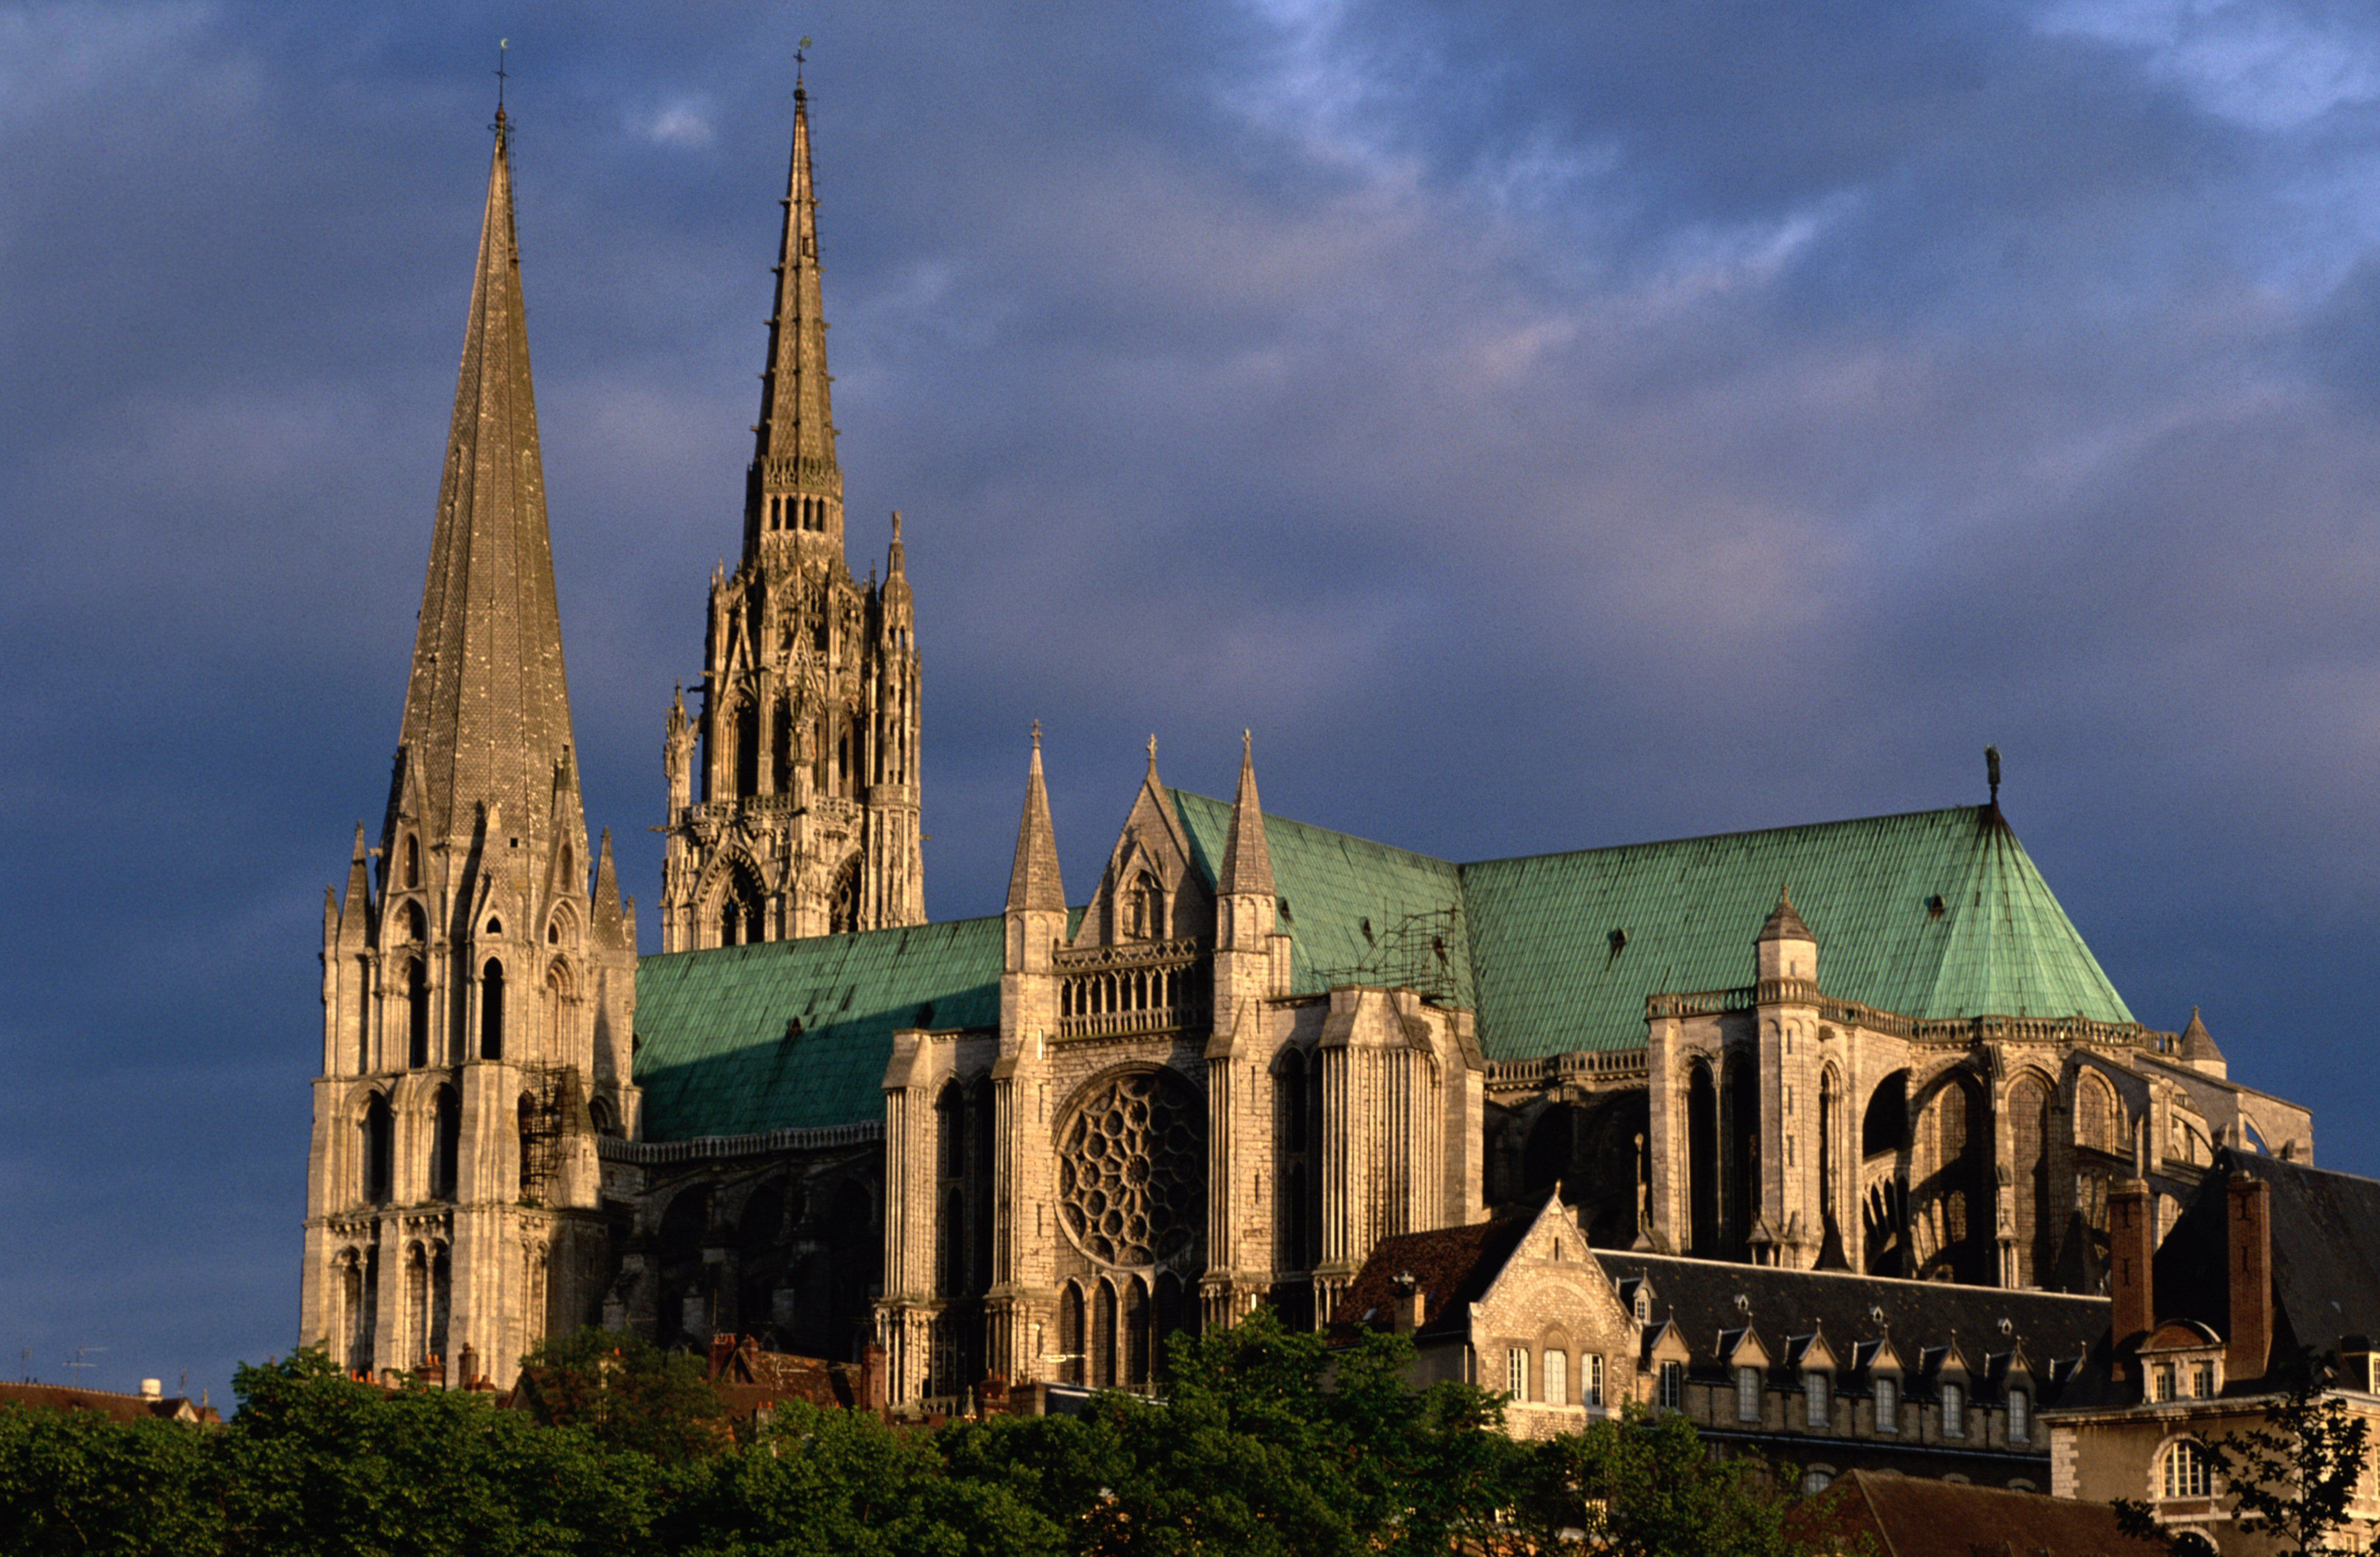 western architecture gothic revival c 1730c 1930 - HD3907×2556